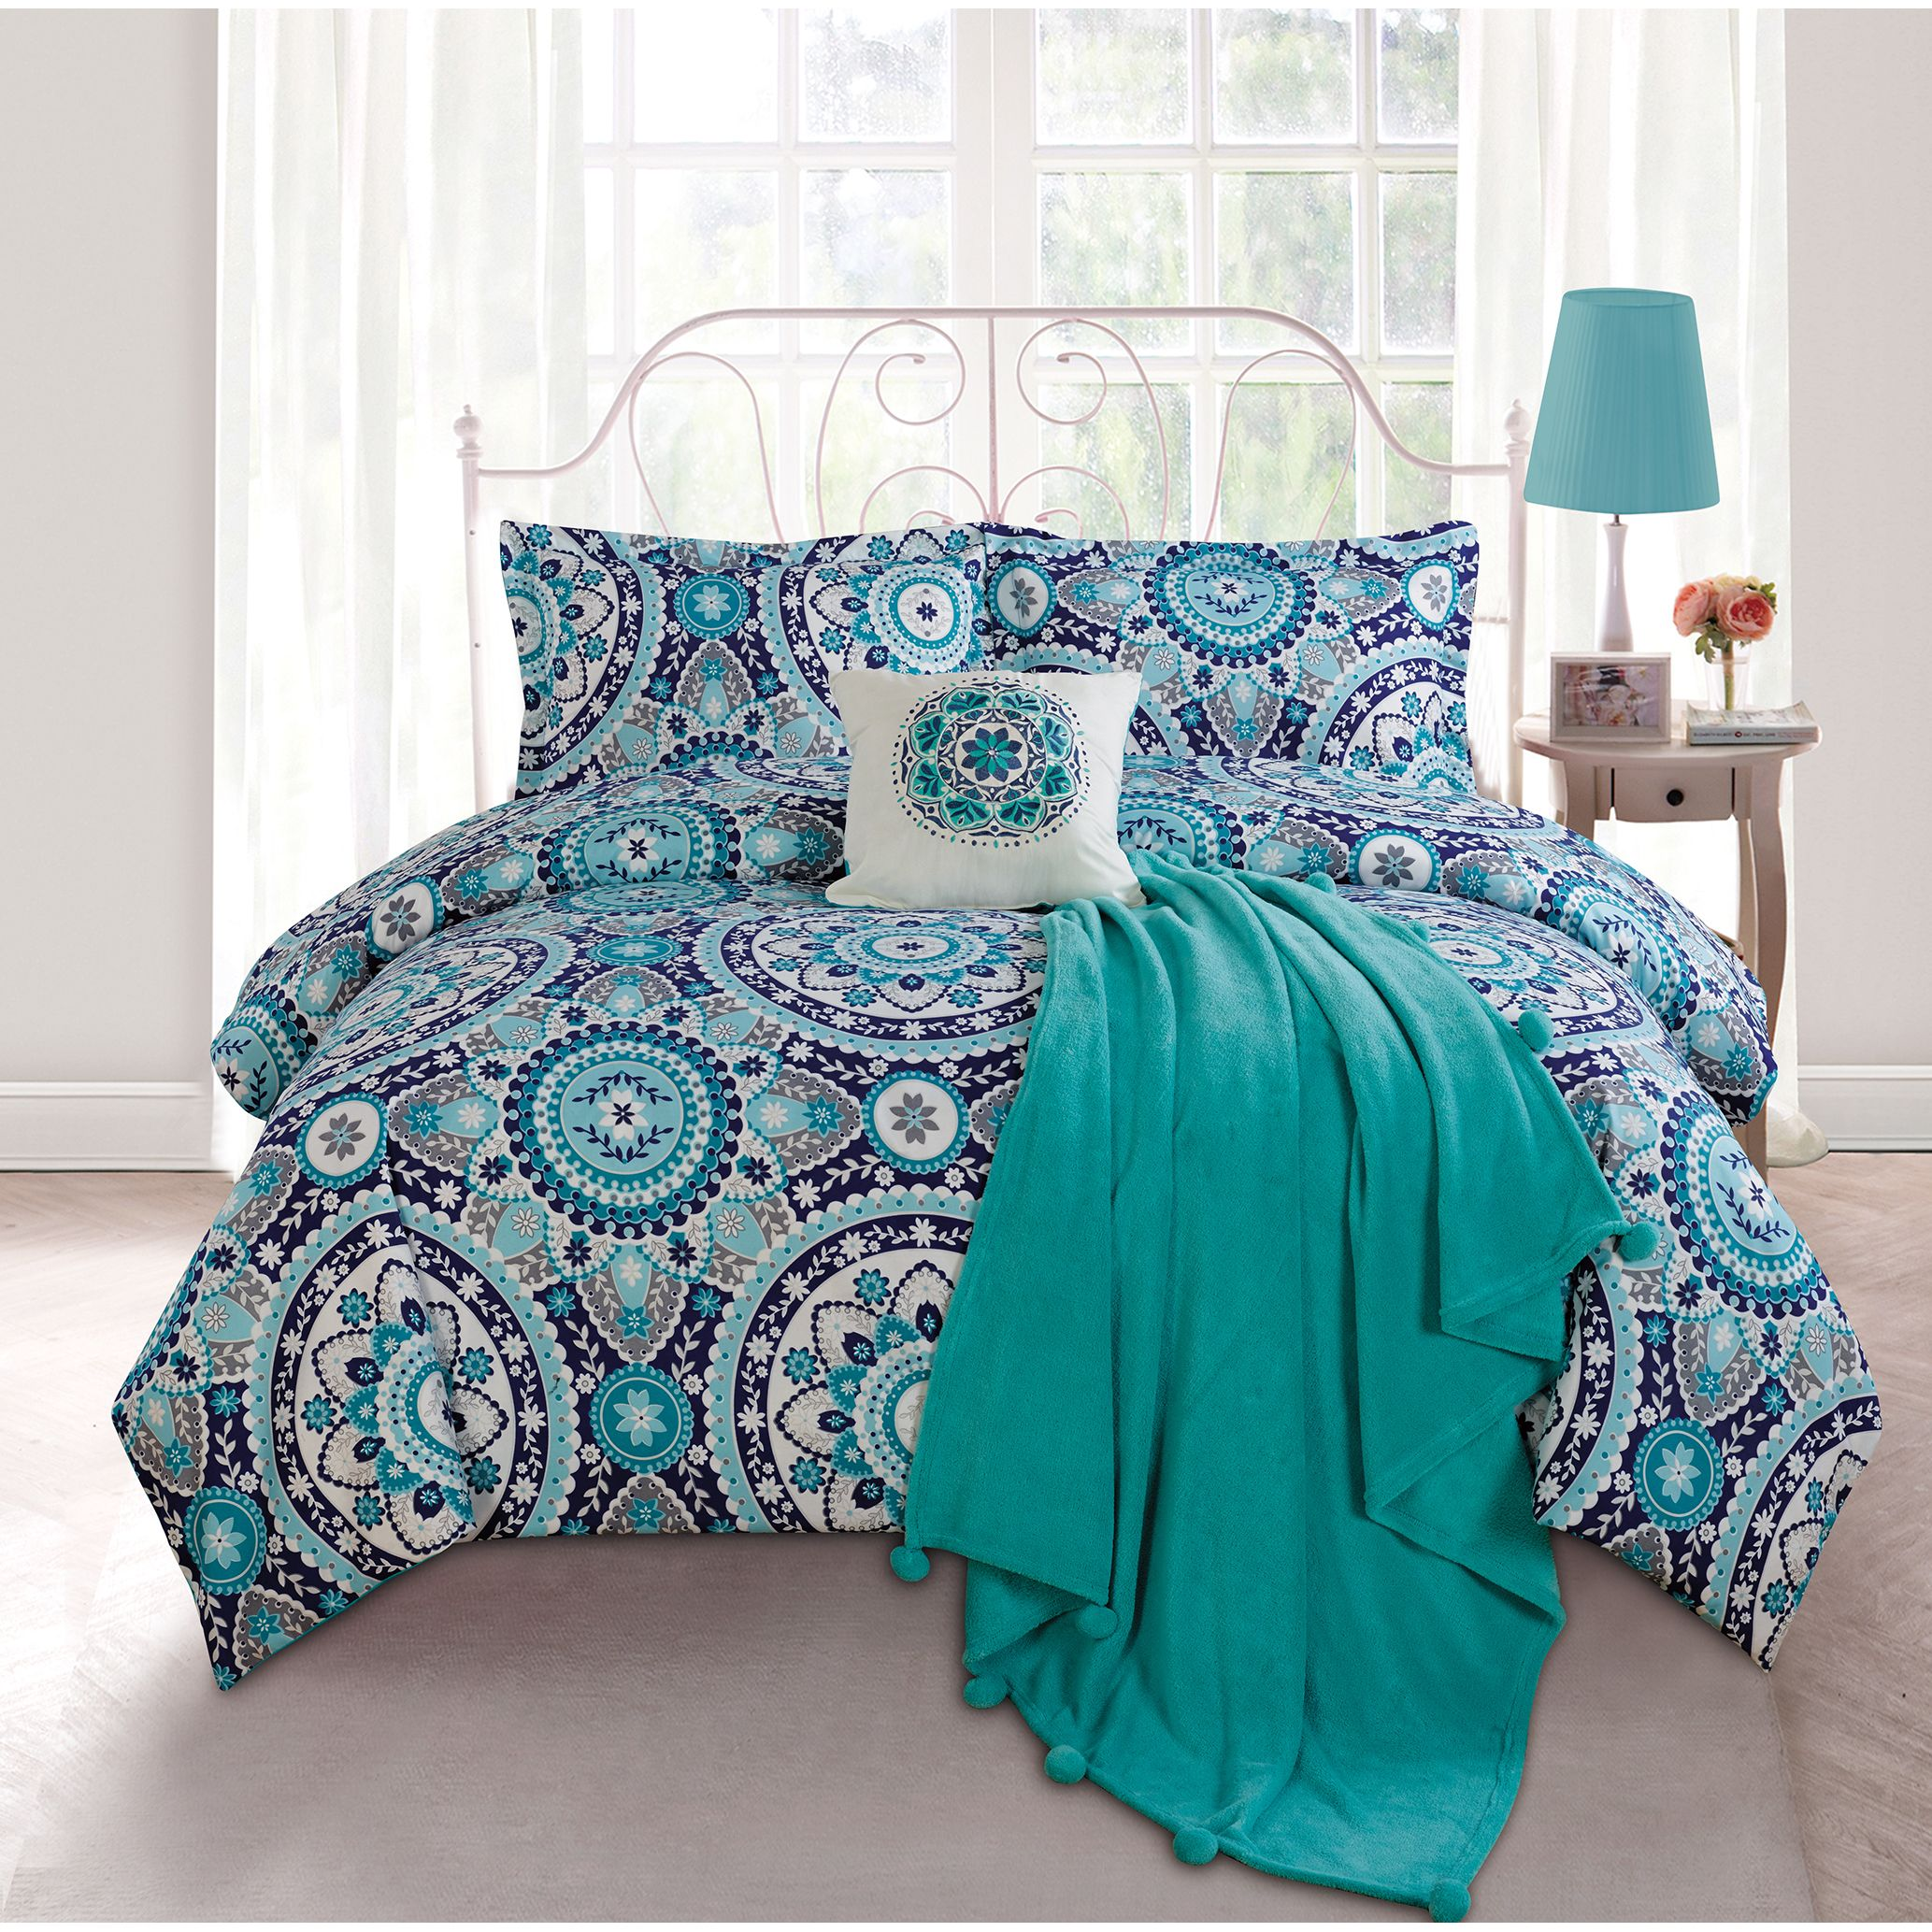 Decorate your dorm room or bedroom with this cute navy blue turquoise blue and white forter This stylish forter set provides superior fort and a